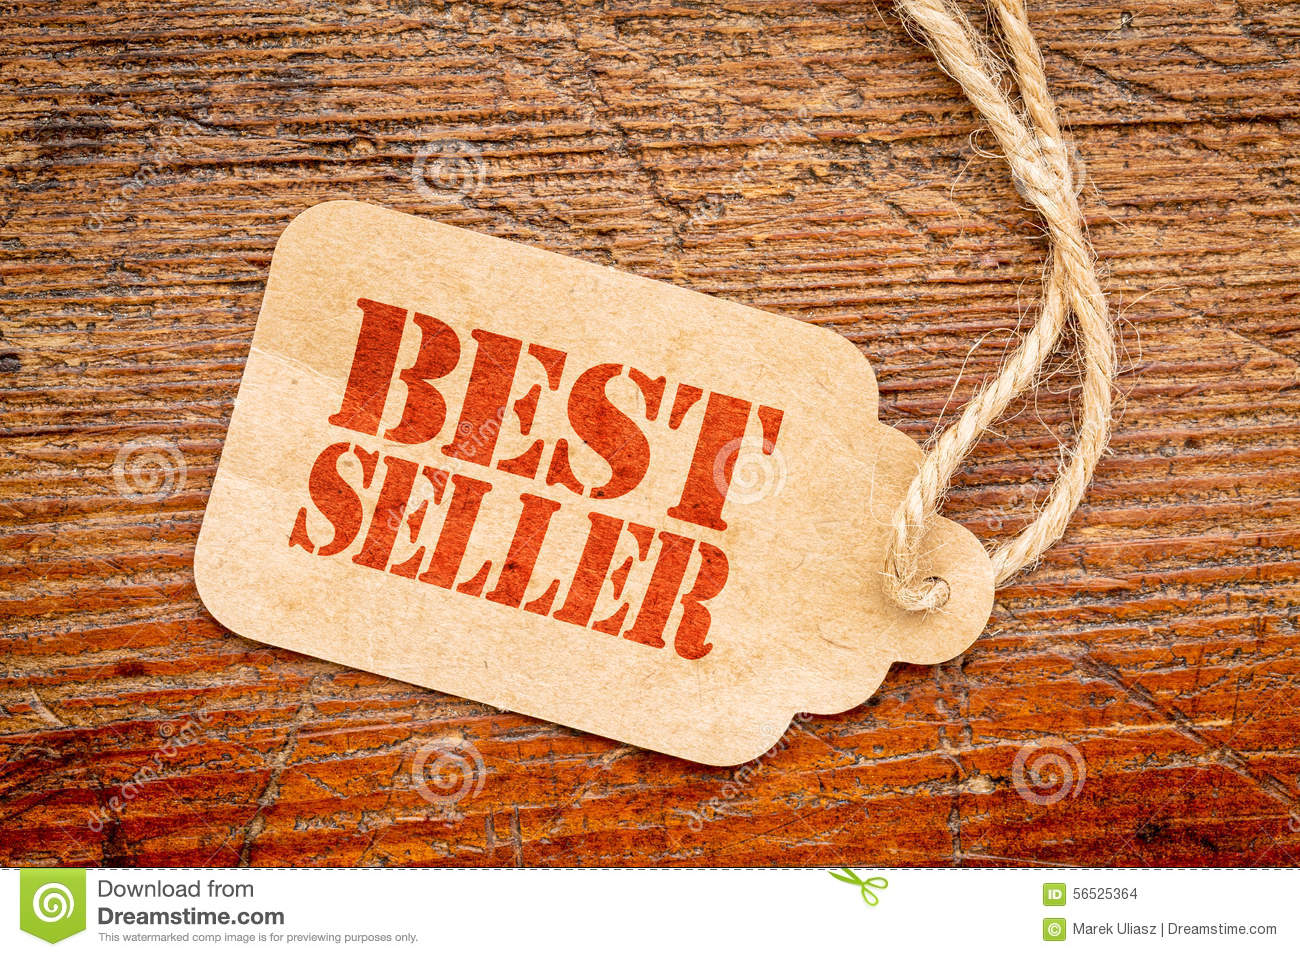 Bestseller sign on a price tag